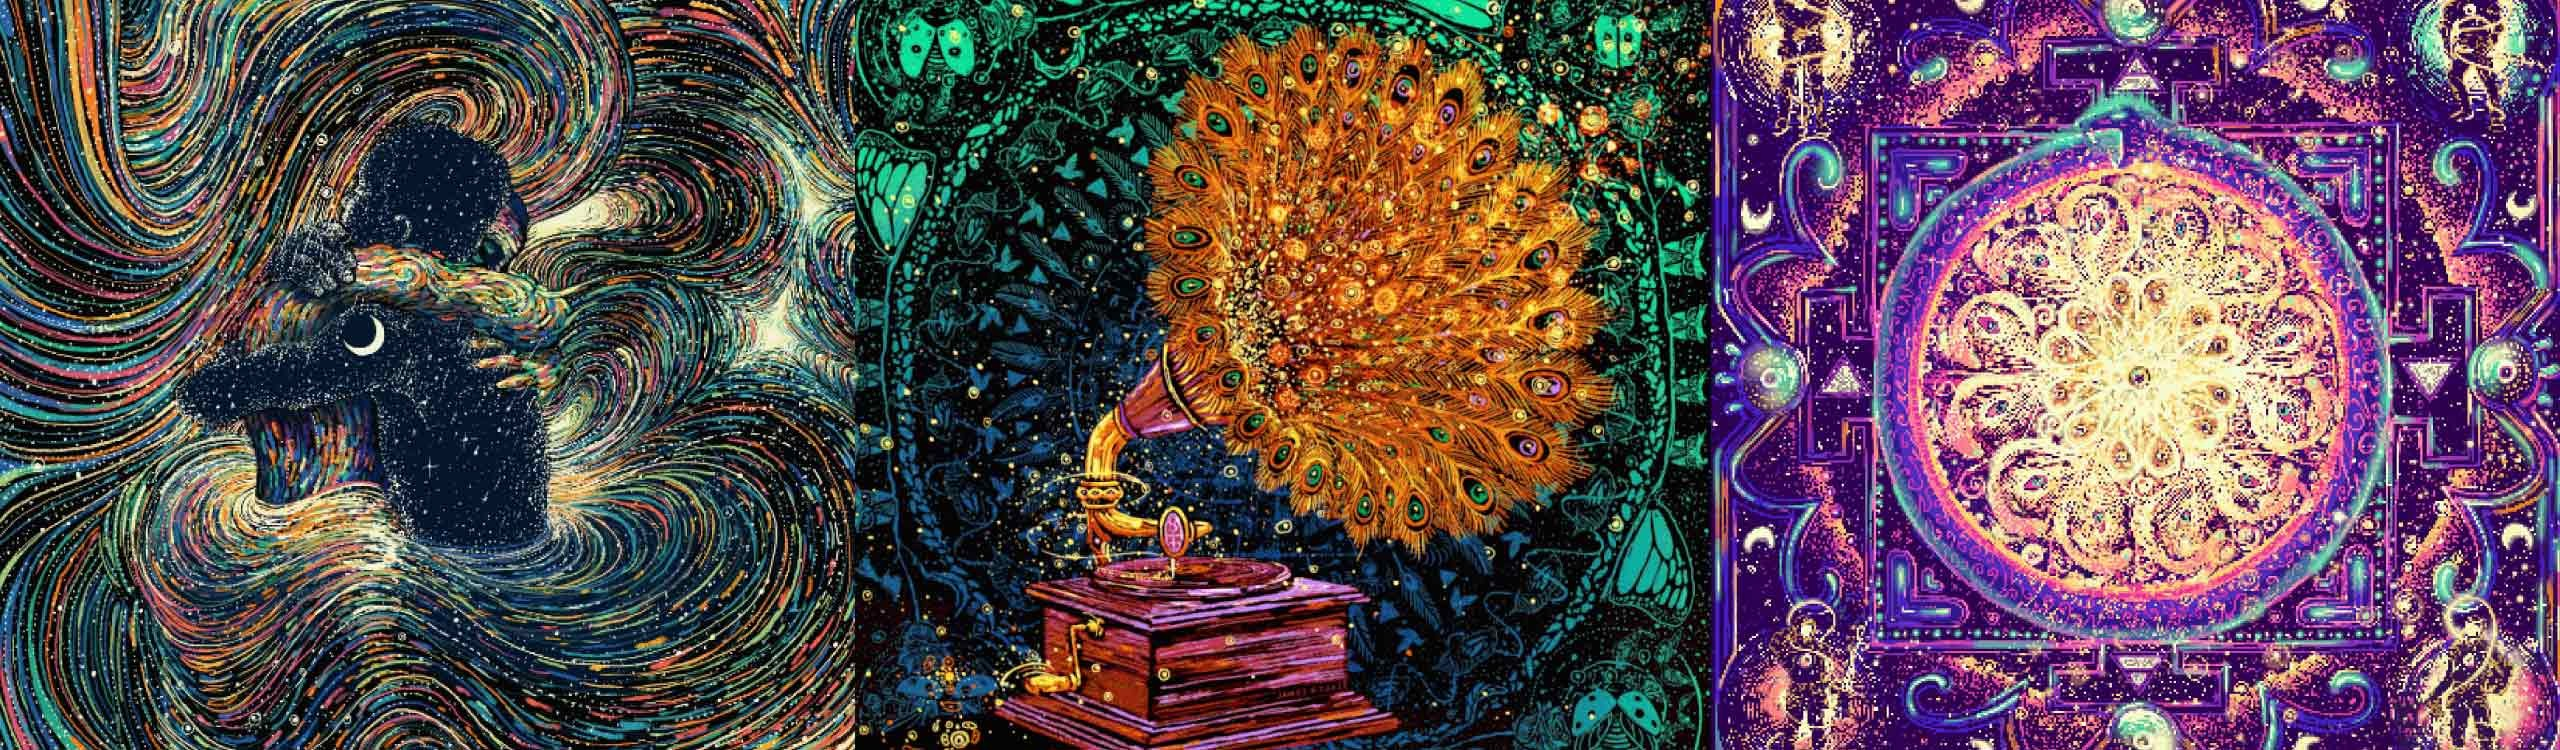 wow! los gifs alucinantes de james r. eads y the glitch